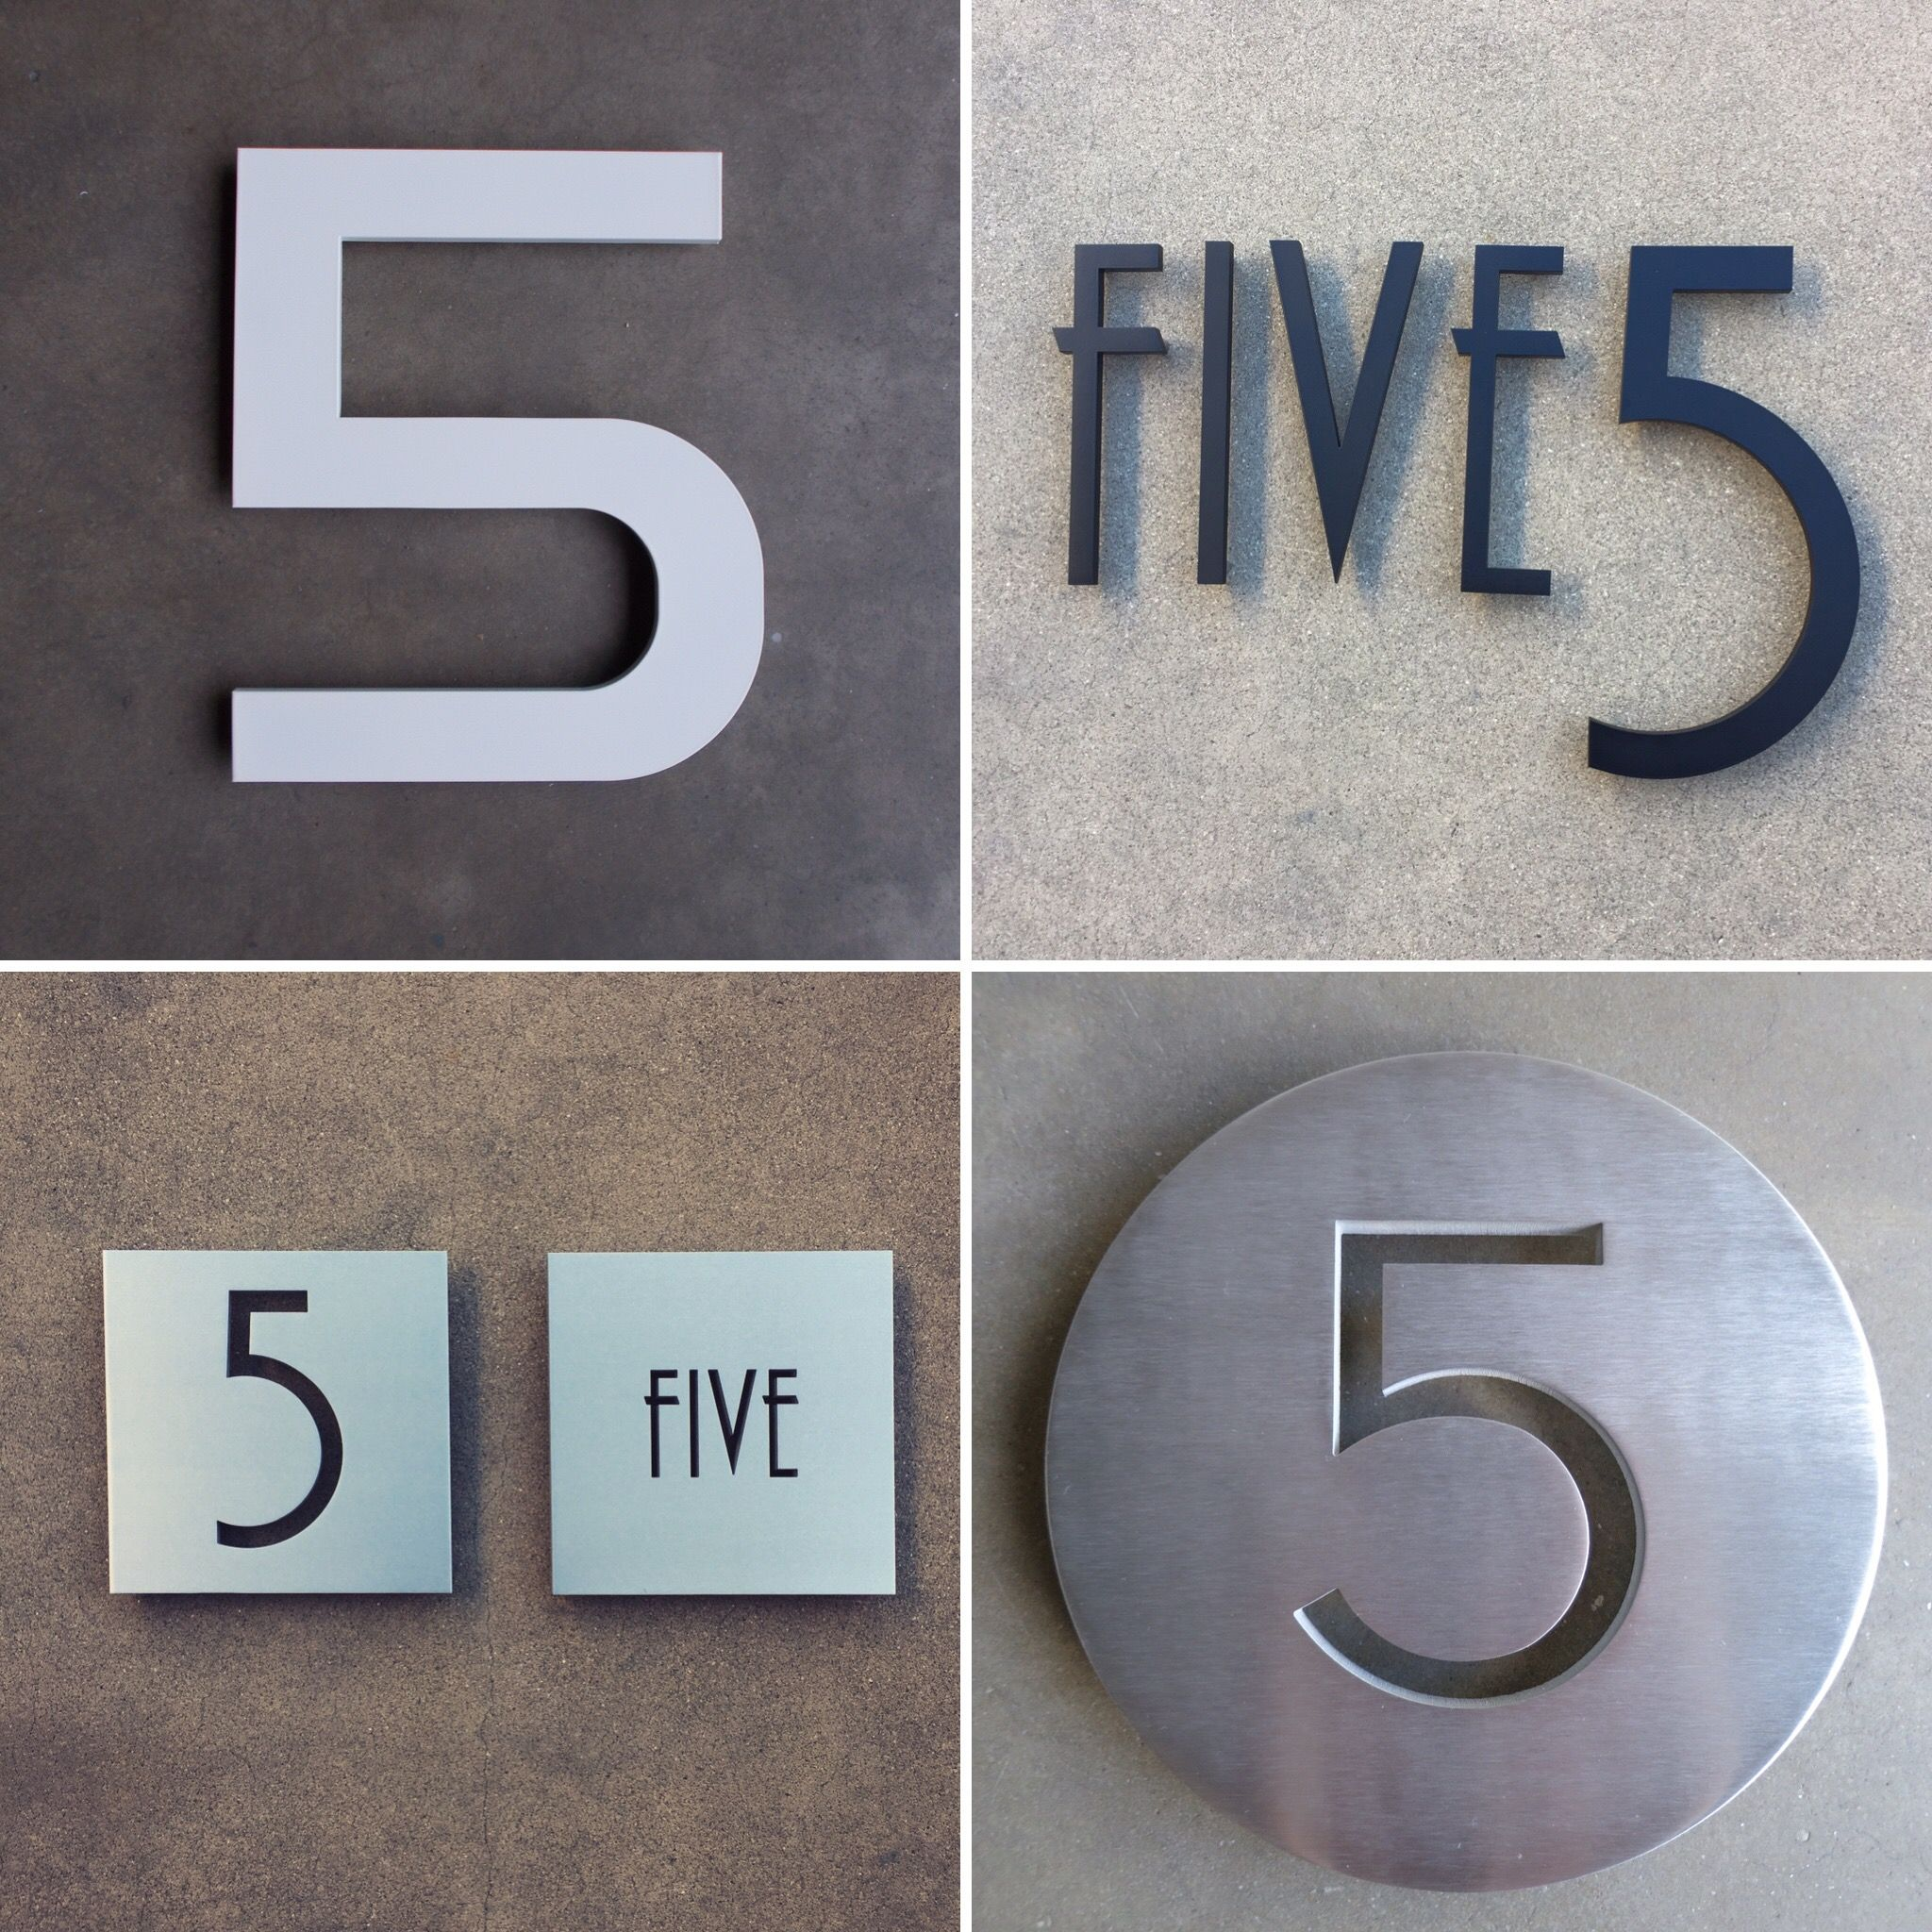 Hive five modern house numbers has all the fives all days all ways modernhousenumbers modernaddressnumbers addressplaques powdercoat white black